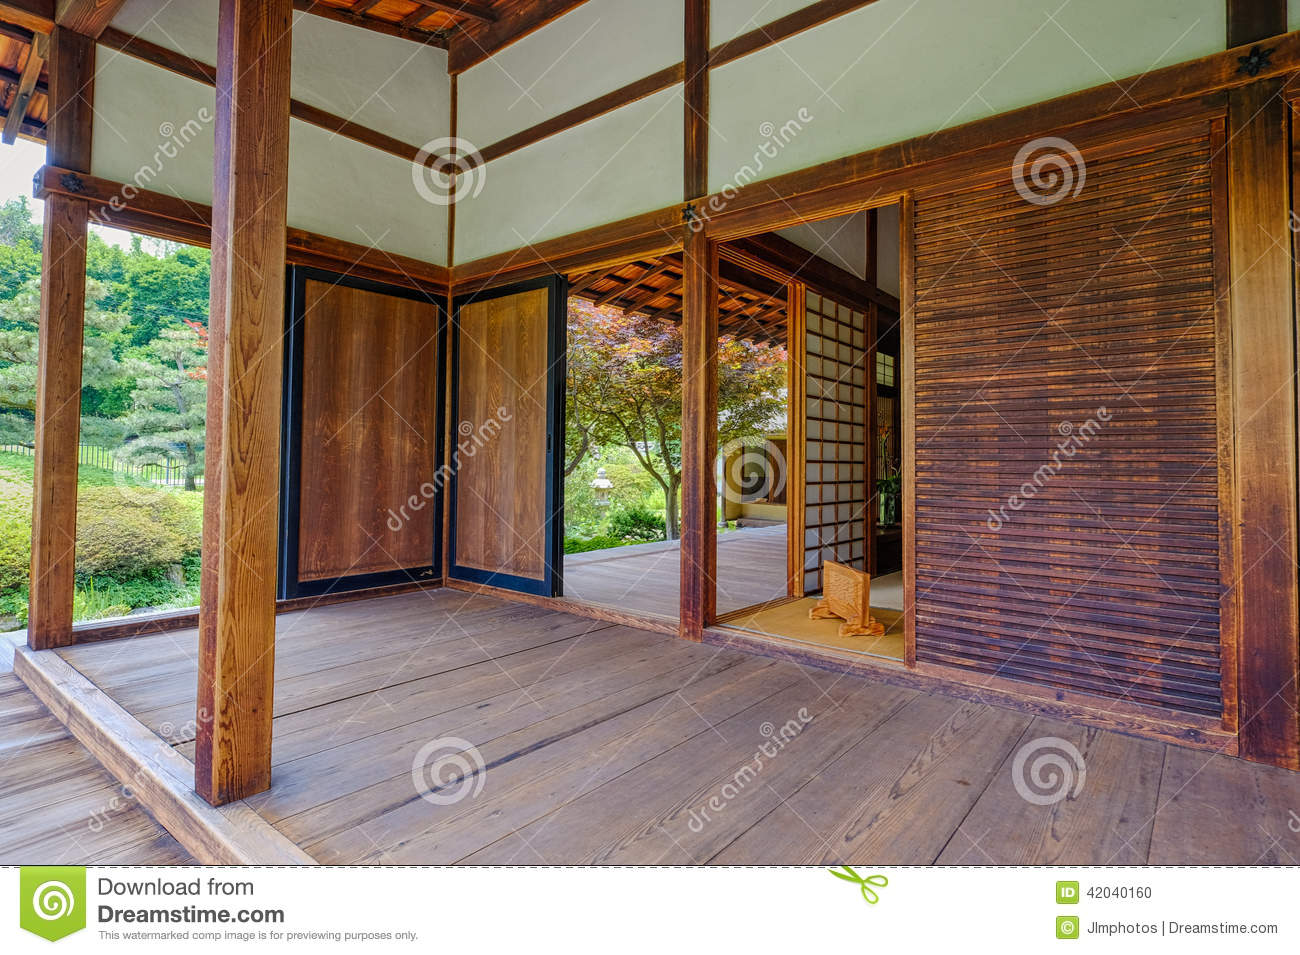 Japanese tea house interior - Interior Of The Shofuso Japanese Tea House Stock Photo